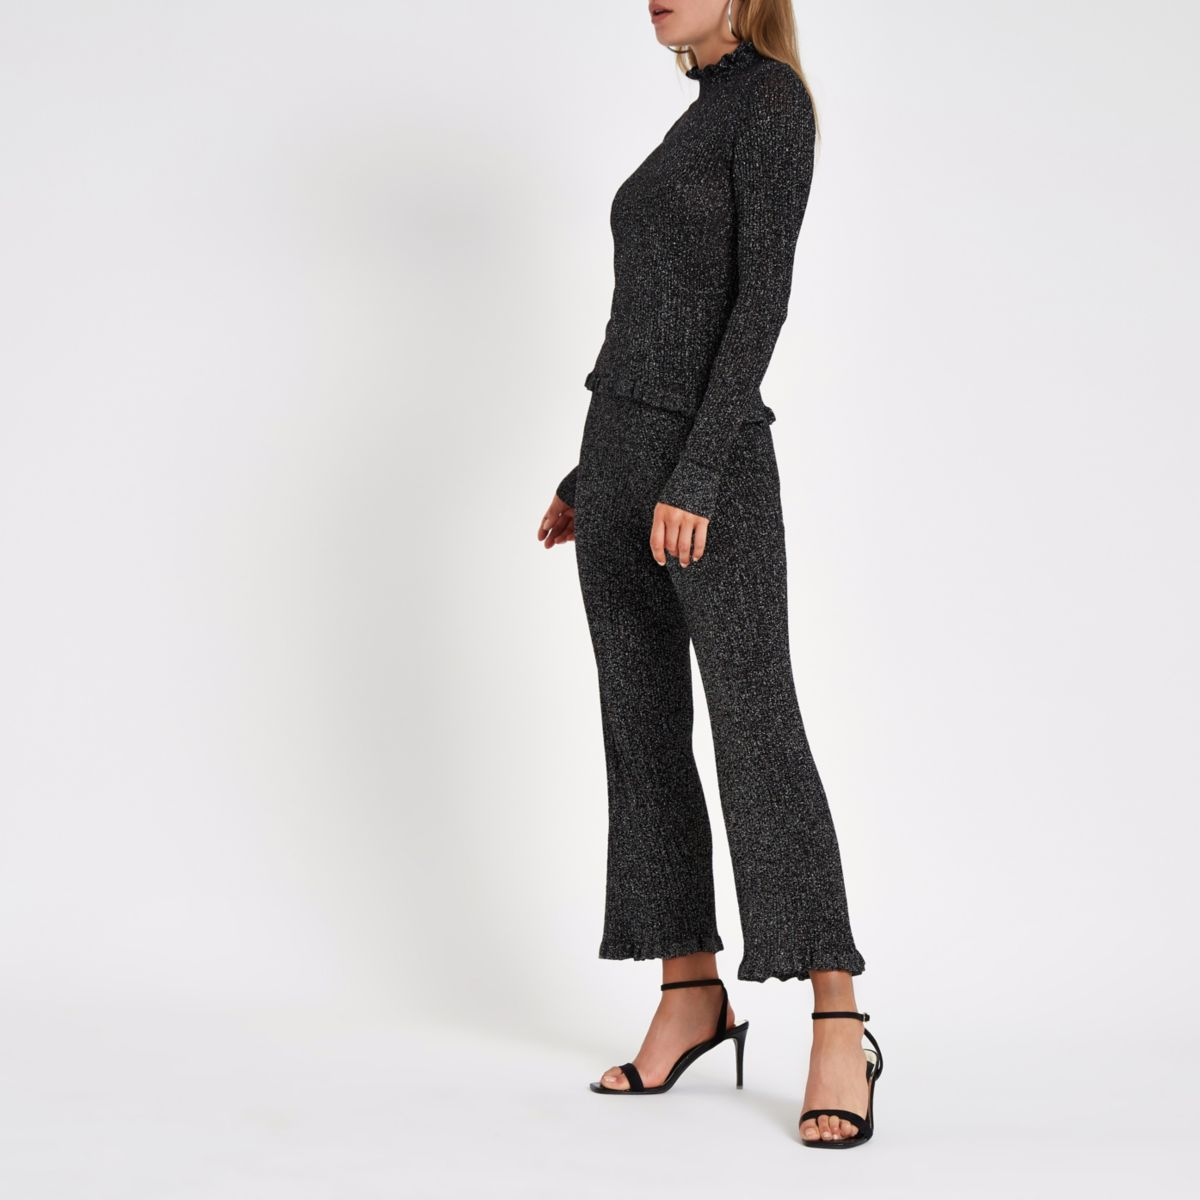 Black metallic knit frill hem trousers